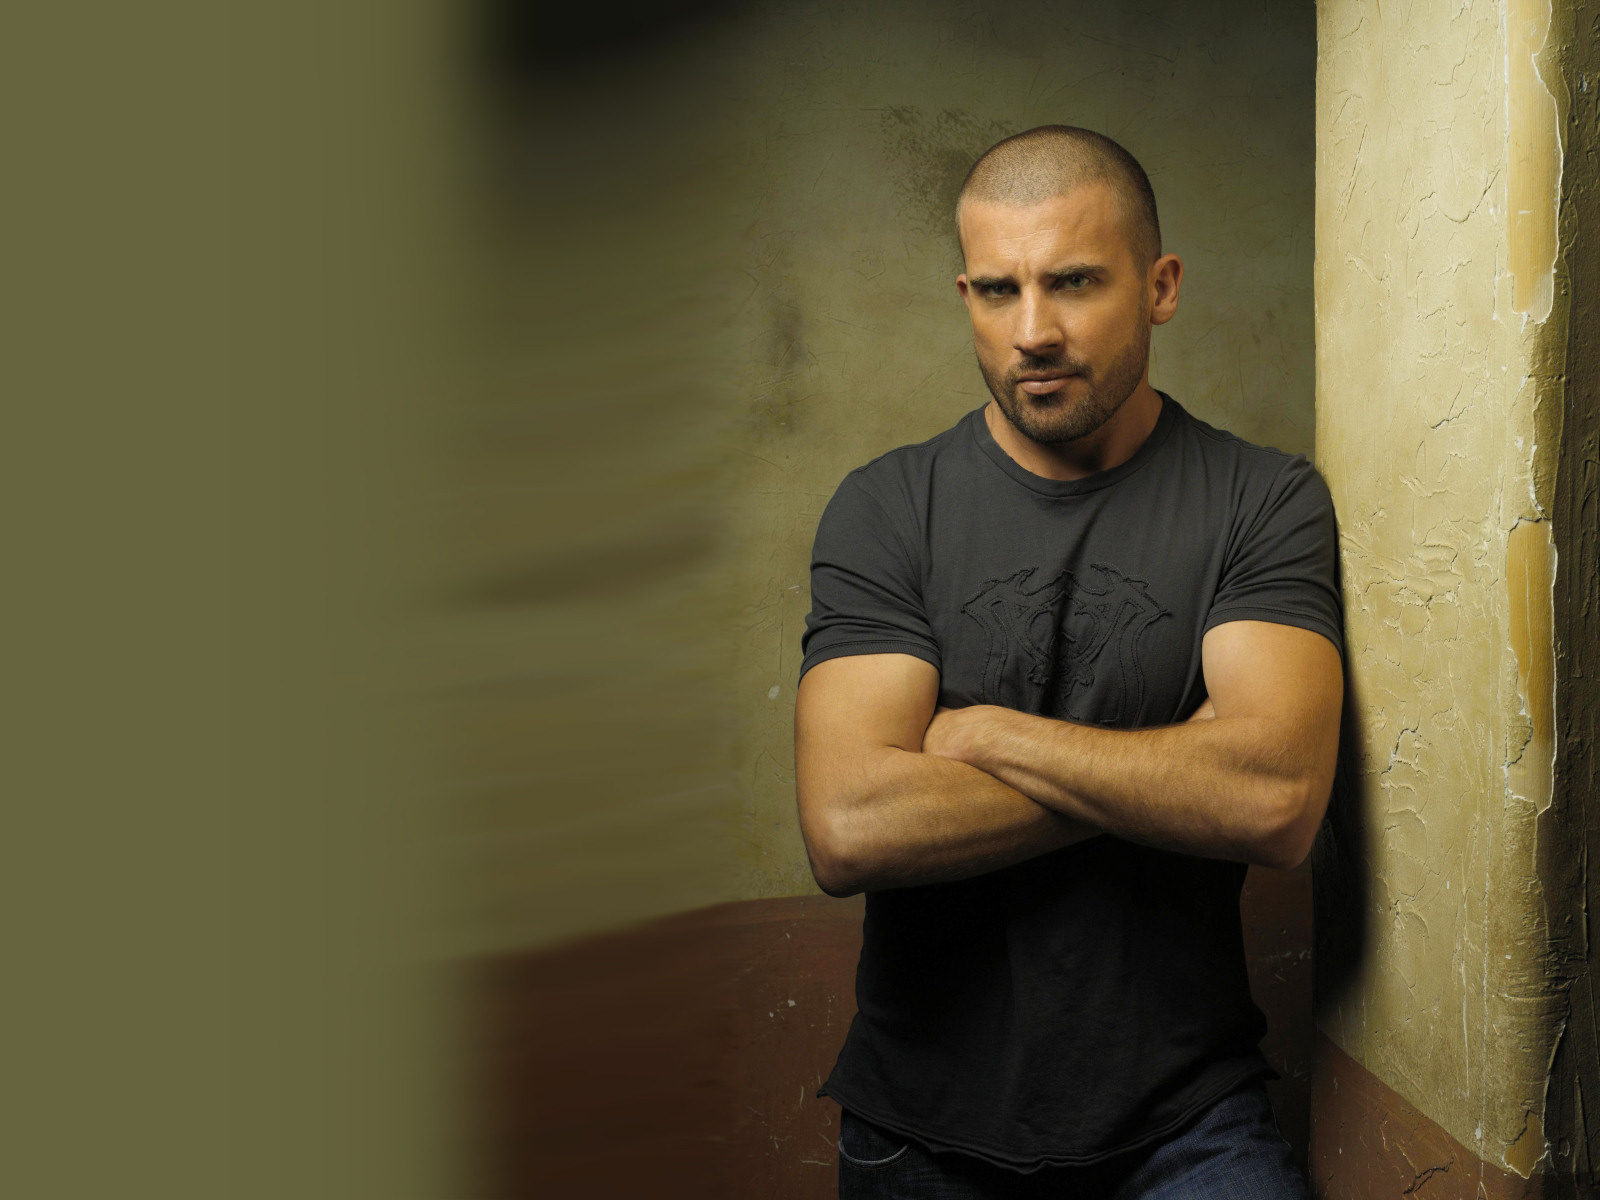 Dominic_Purcell_03_1600x1200.jpg